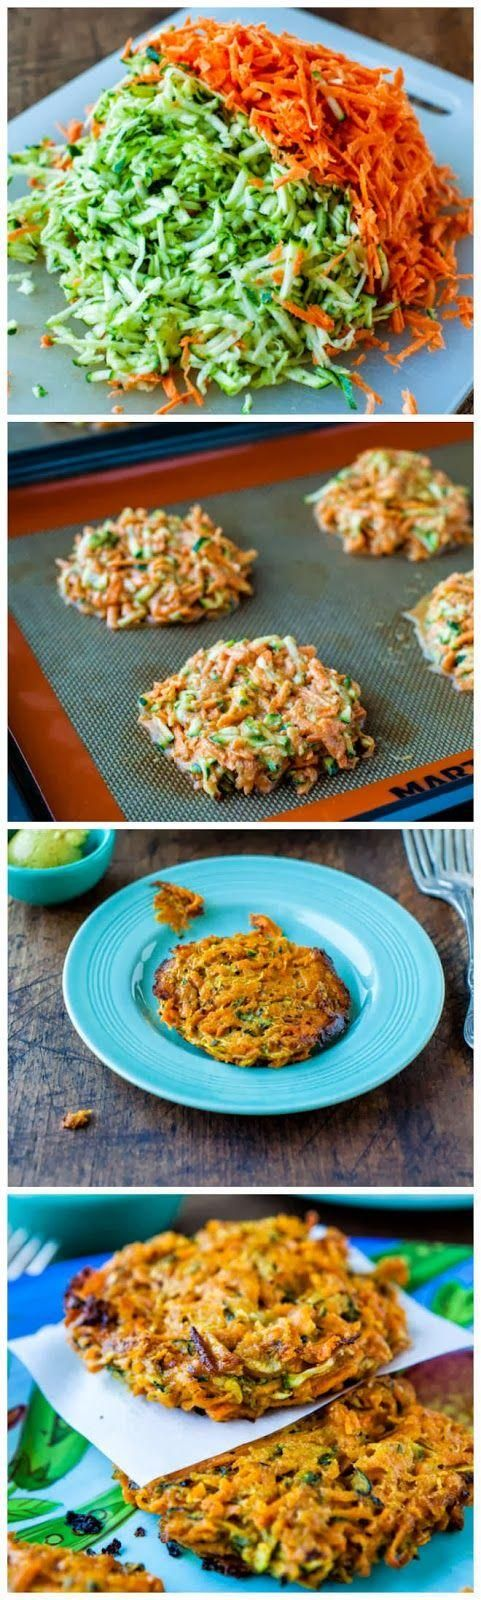 Baked Chipotle Sweet Potato and Zucchini Fritters - Joybx